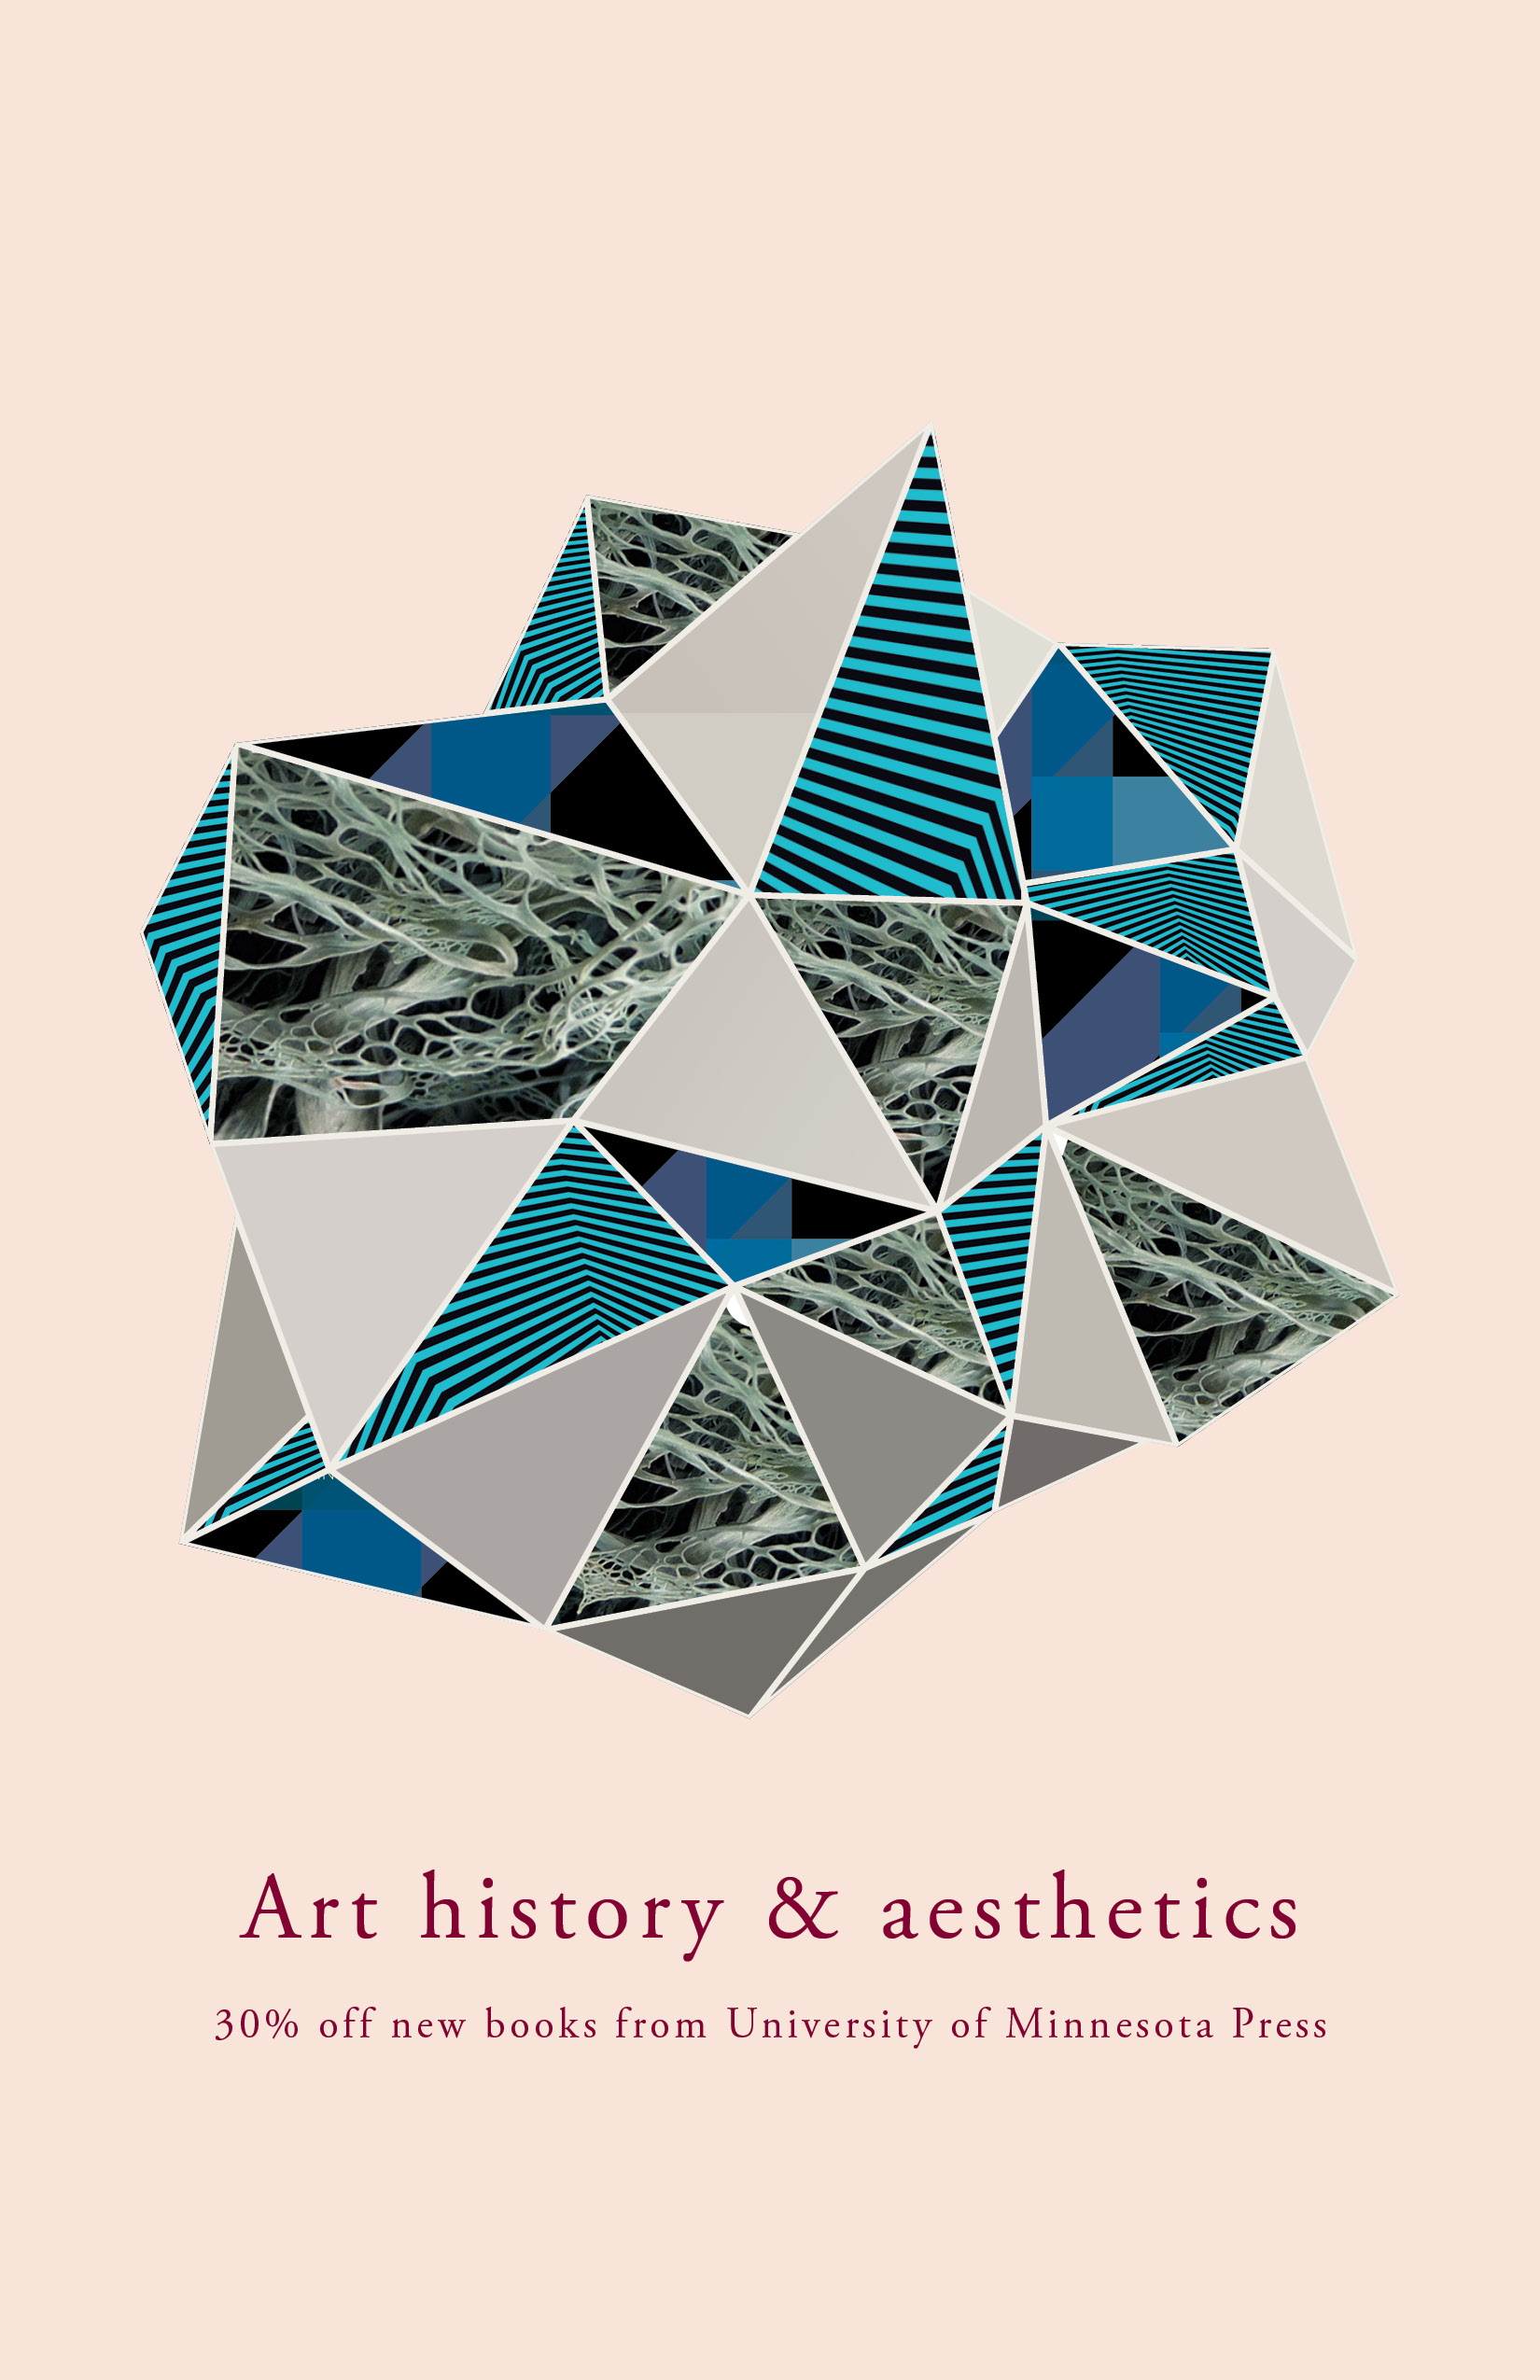 Cover for the University of Minnesota Press Art and Aesthetics catalog.